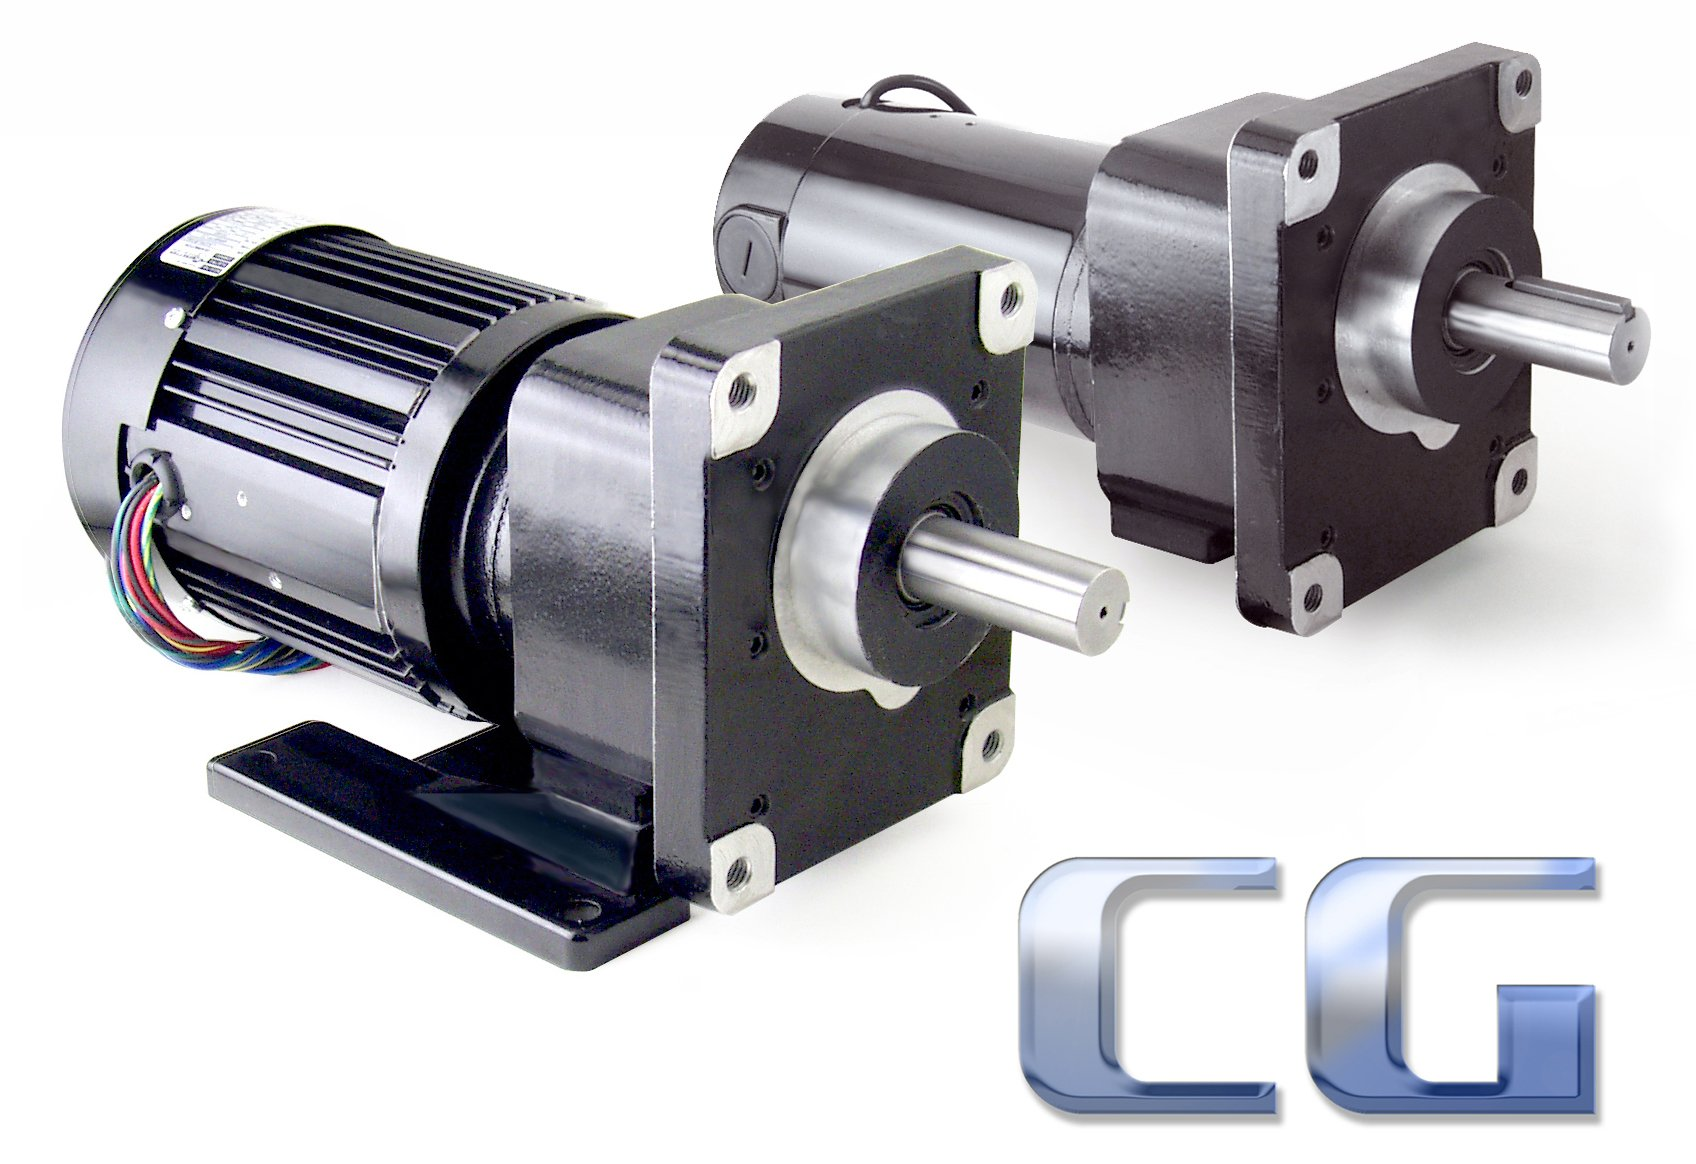 Upgraded And Expanded Cg Gearmotor Selection Bodine